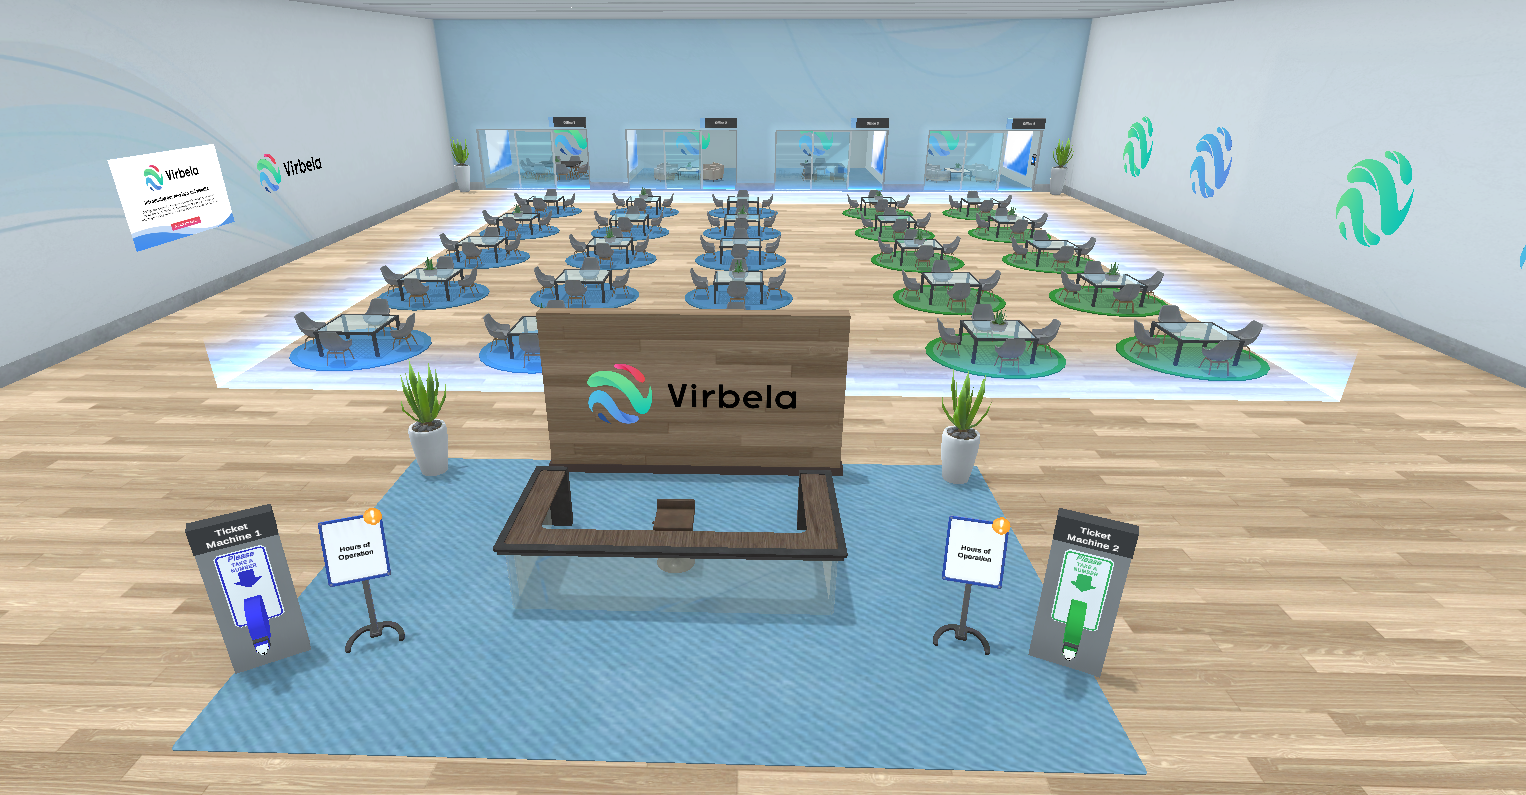 A New Support Center Brings Walk-Up Services into Virtual Worlds